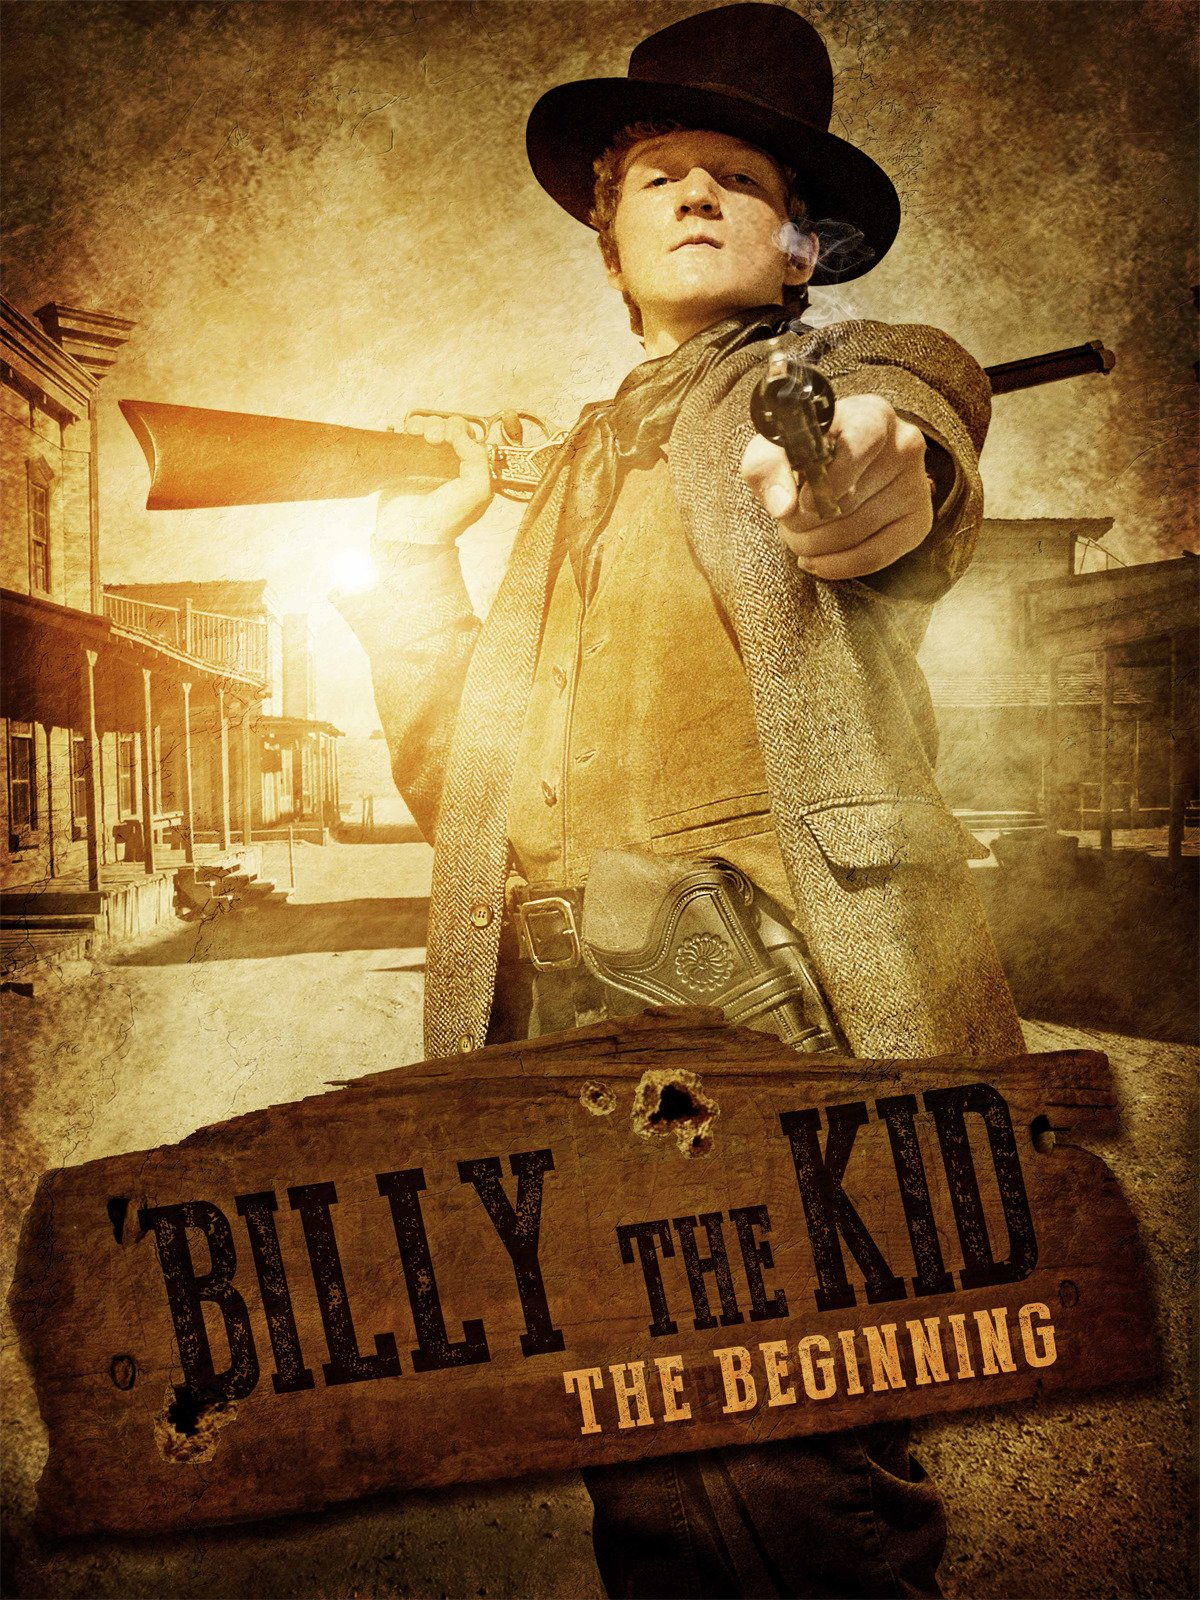 Billy the kId the beginning